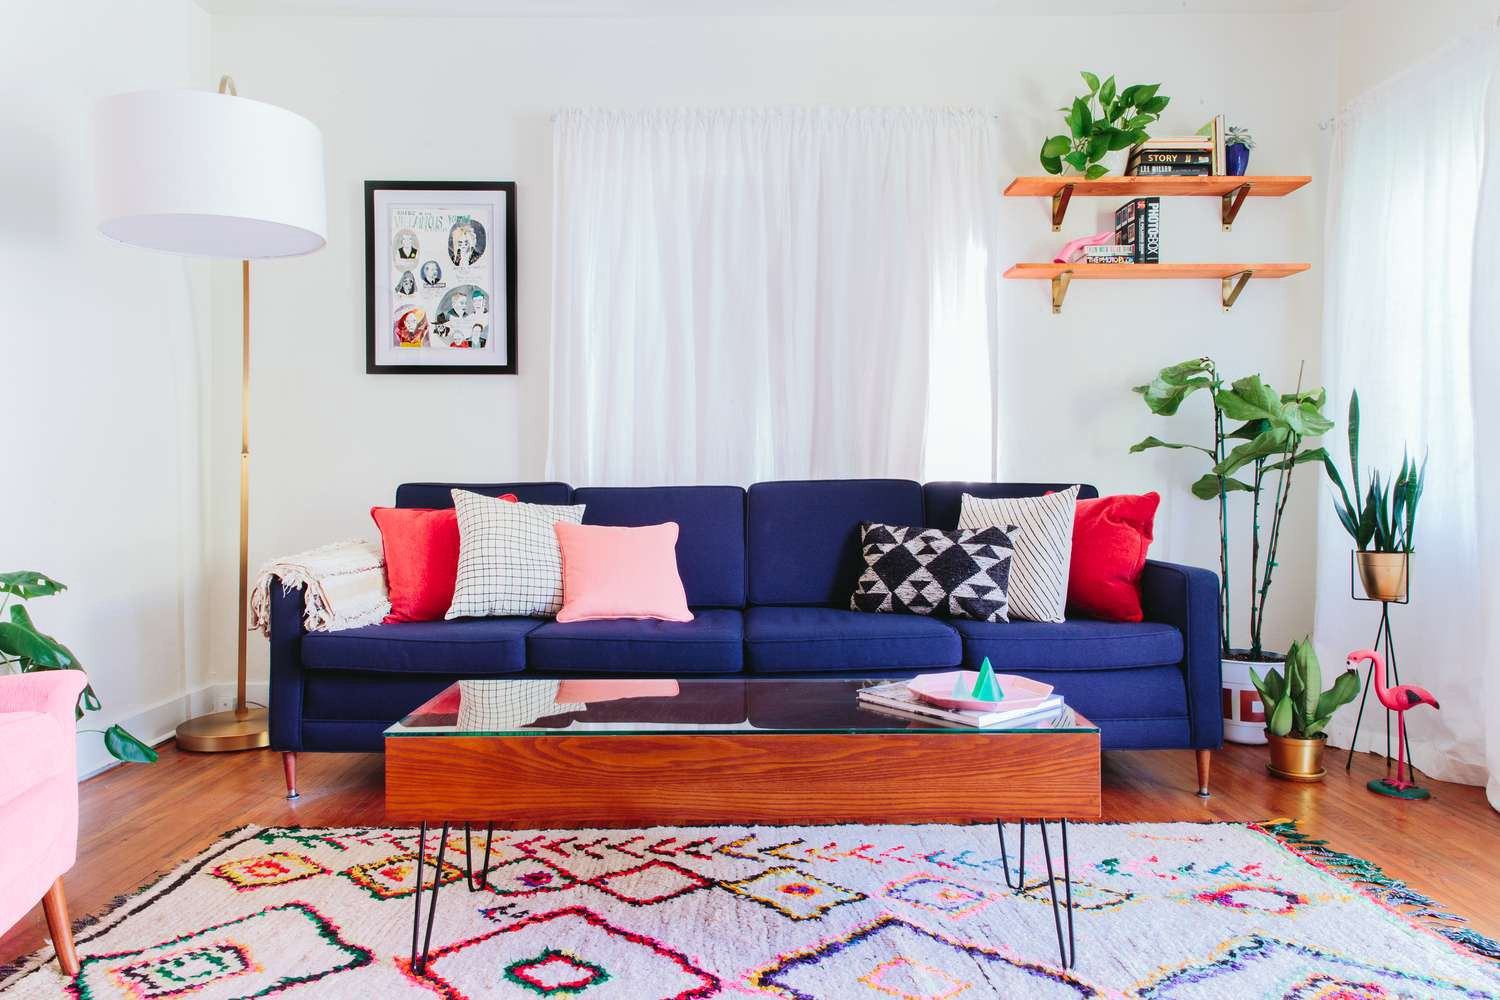 Shauna Bottos — Quick and Simple Living Room Decorating Ideas  by